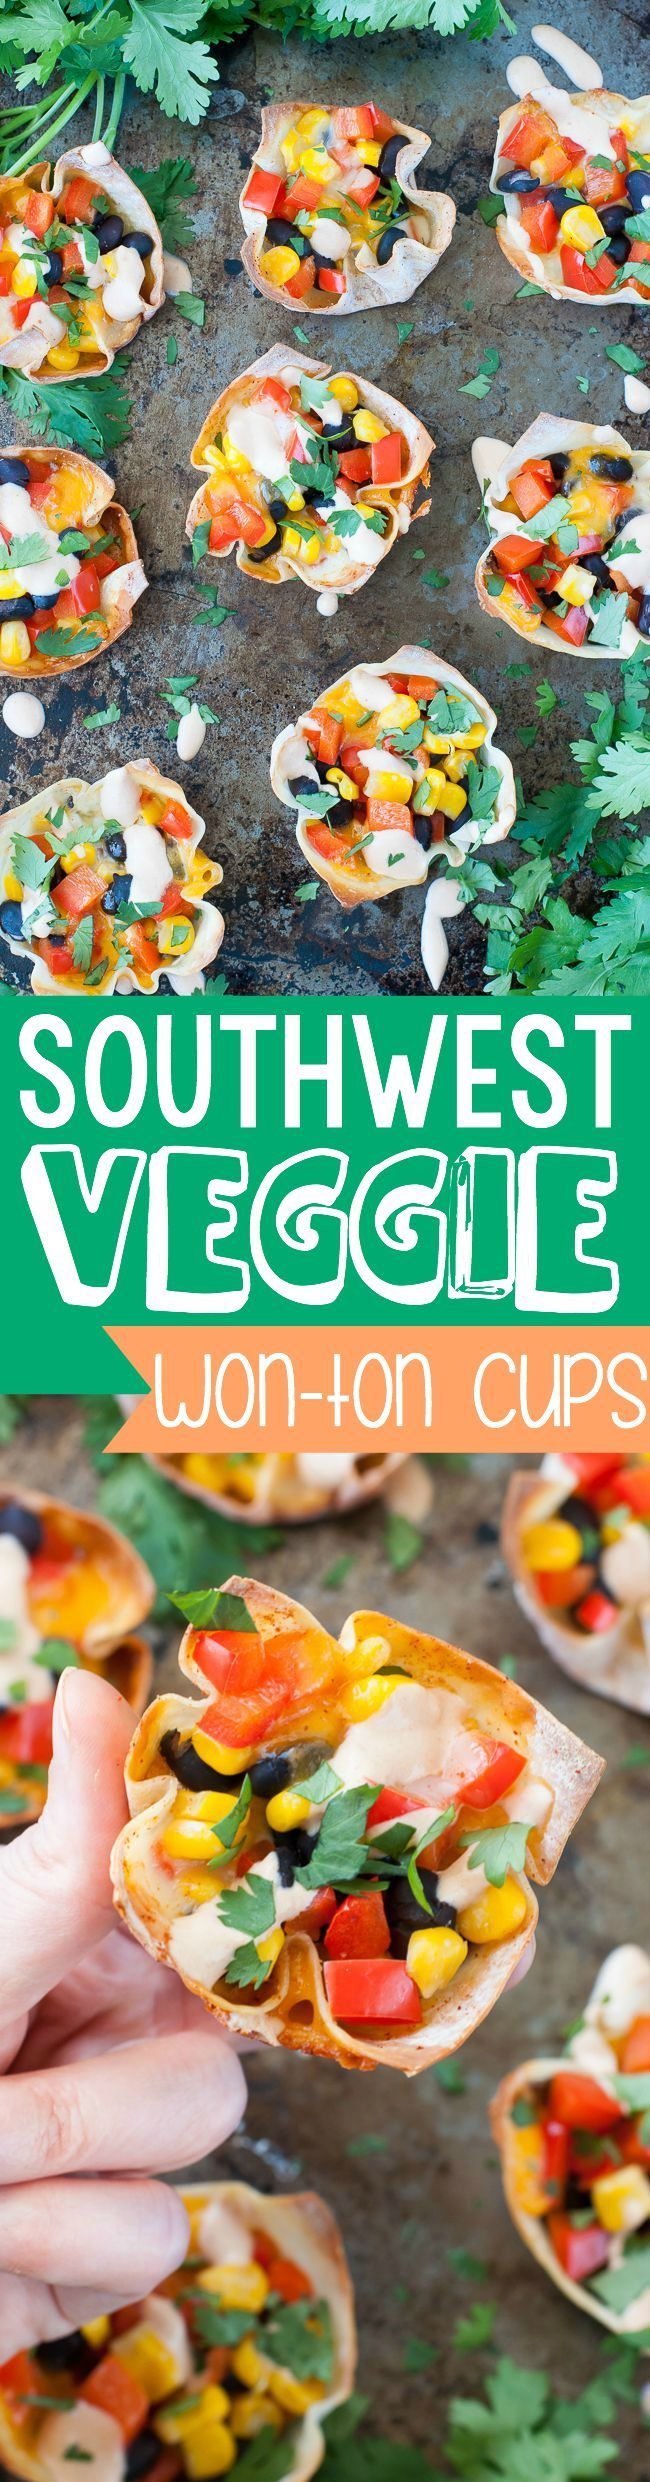 Southwest Veggie Won-Ton Cups :: this quick and easy snack makes a great appetizer and is freezer-friendly too!